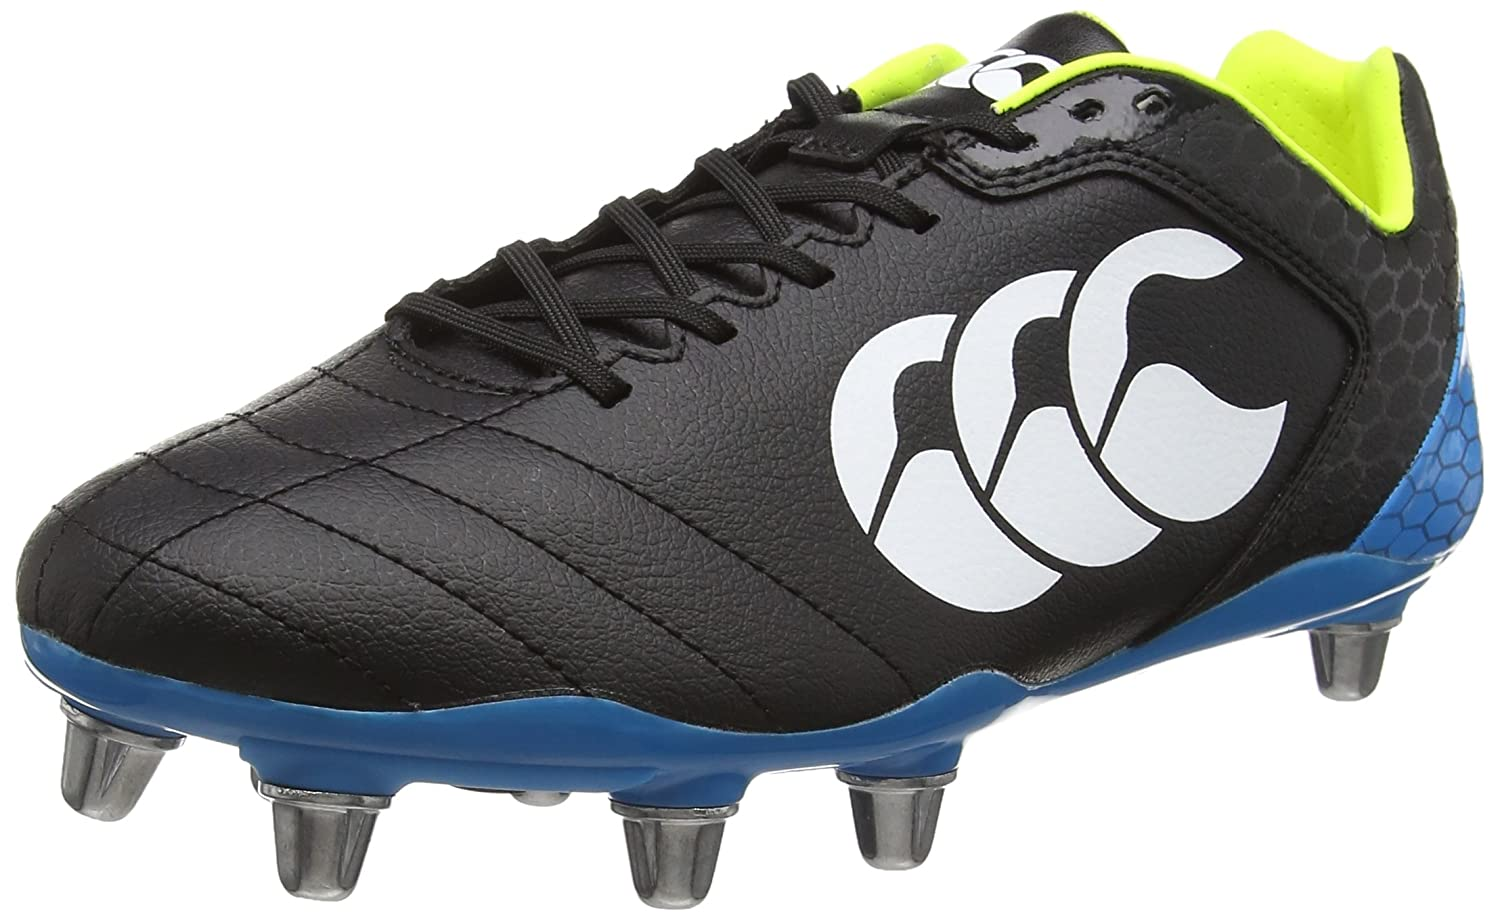 CCC Stampede Club 8 Stud Rugby Boots E22388